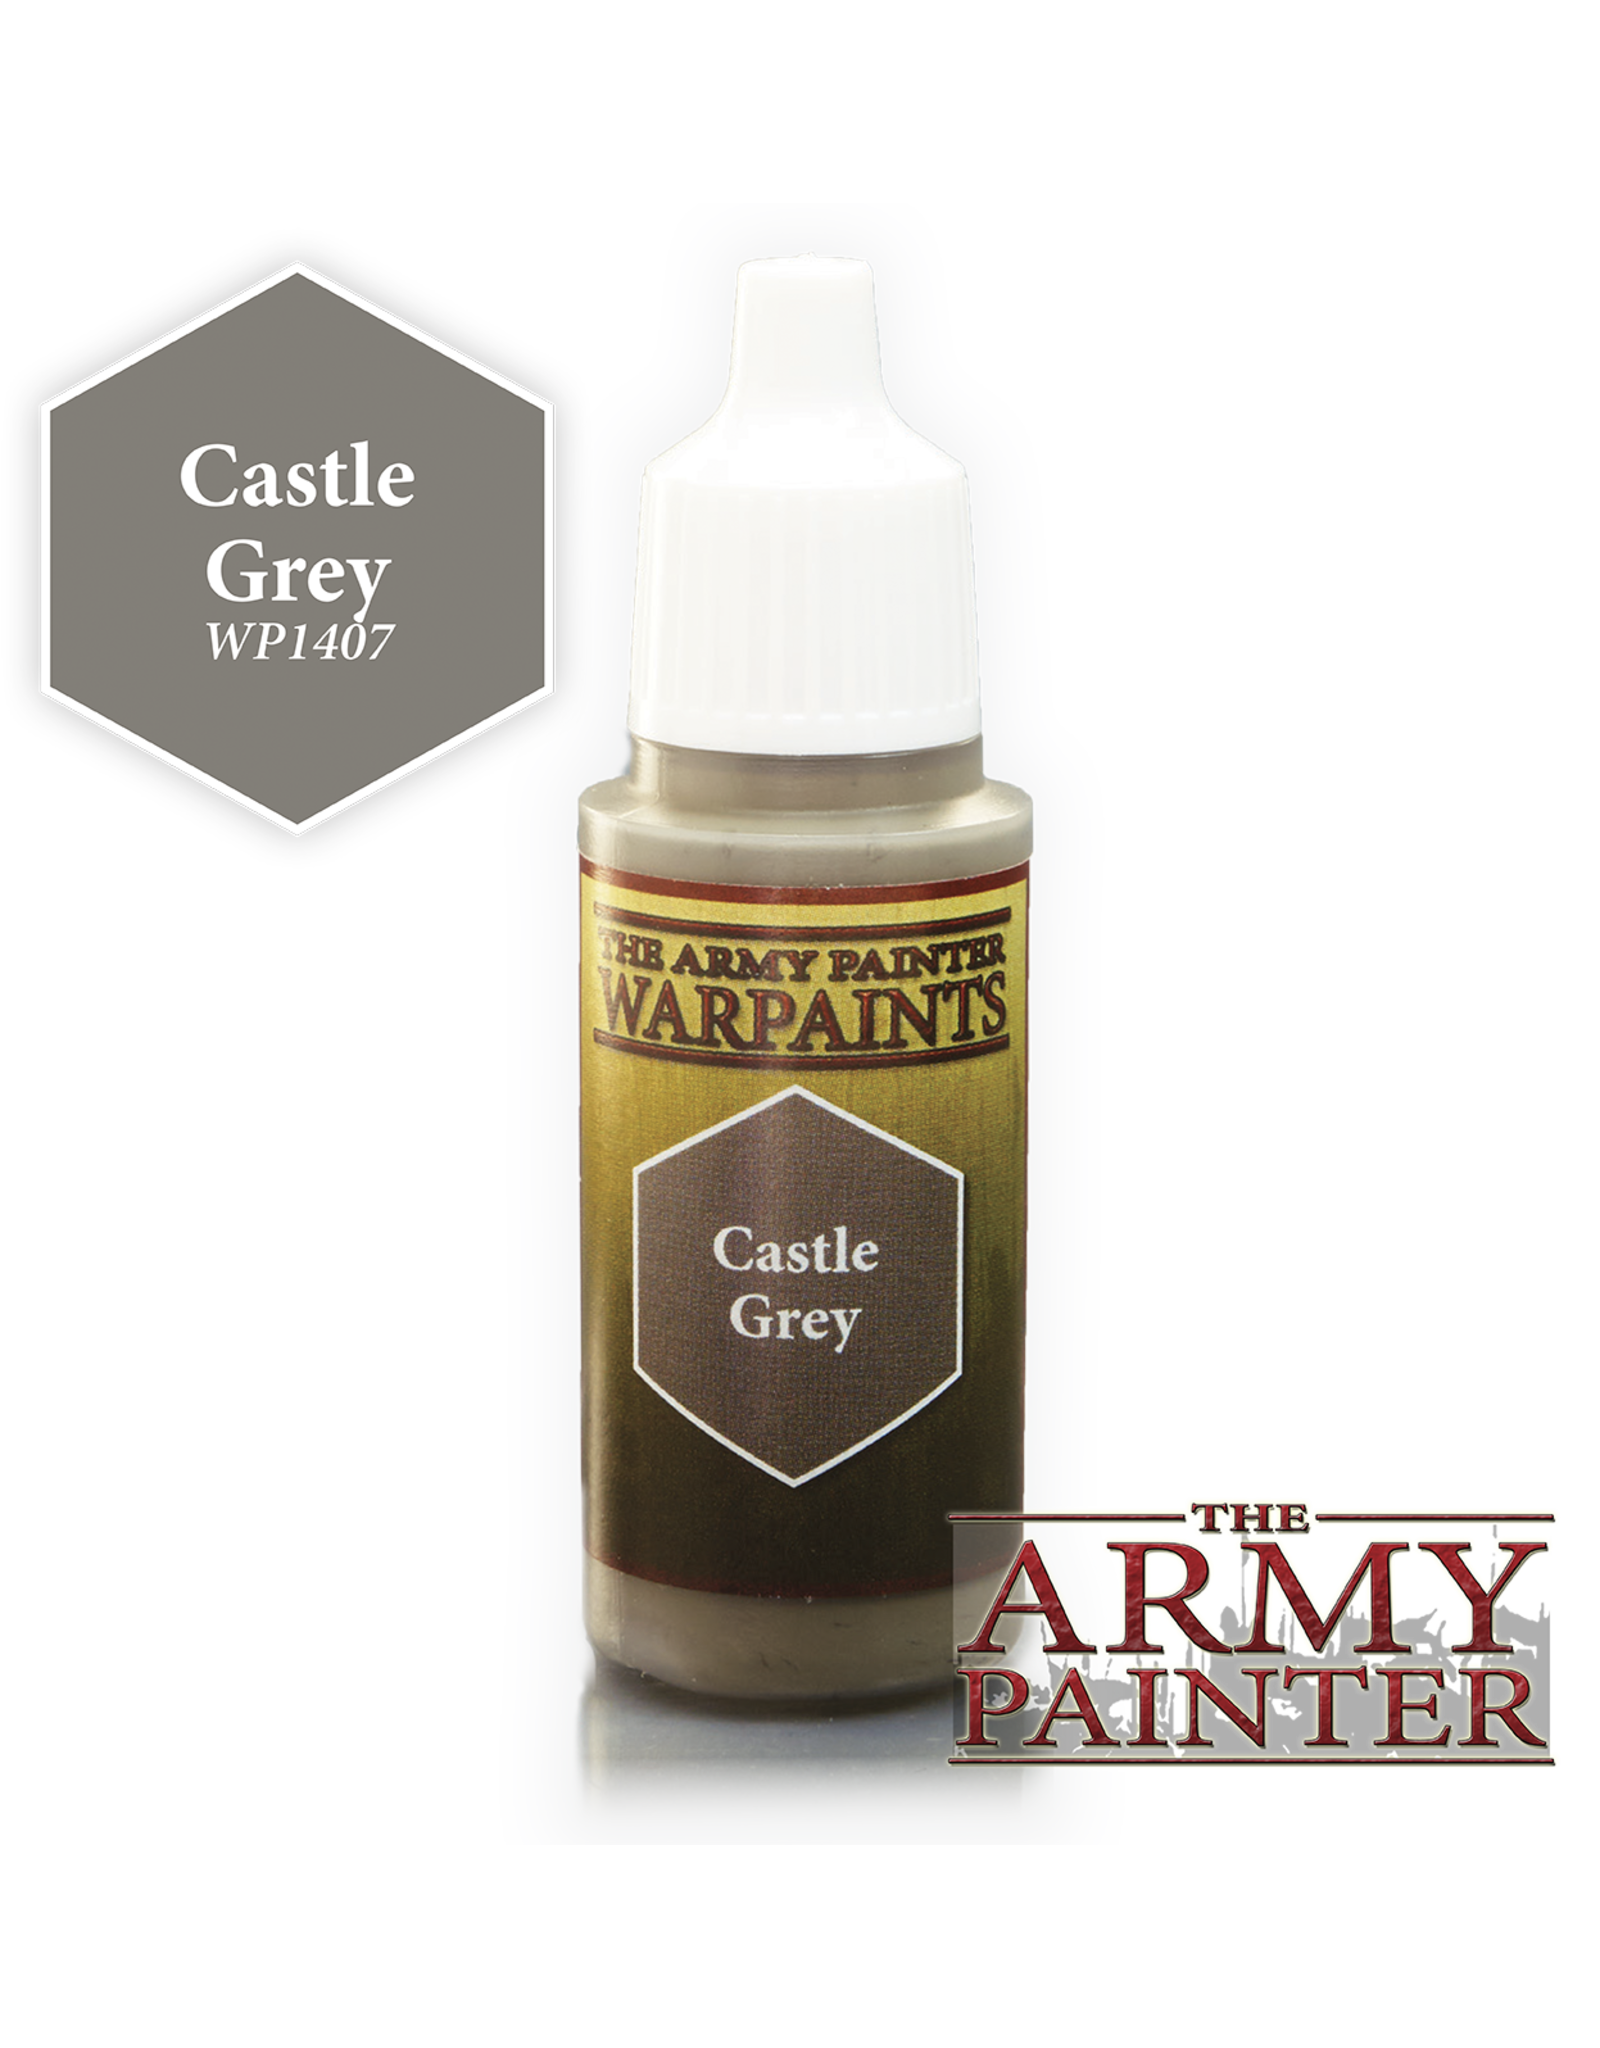 THE ARMY PAINTER ARMY PAINTER WARPAINTS CASTLE GREY